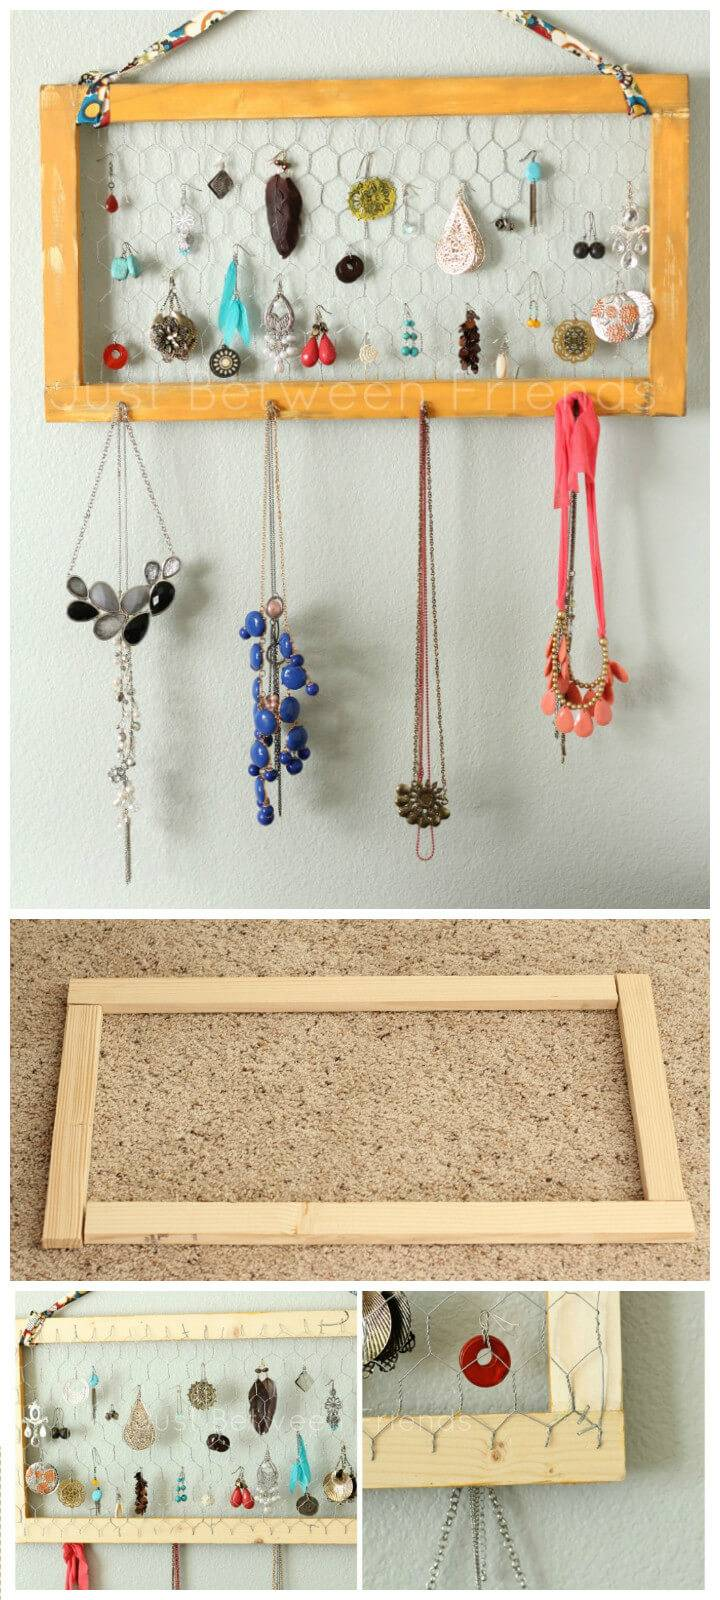 jewelry organizer made of wood and chicken wire